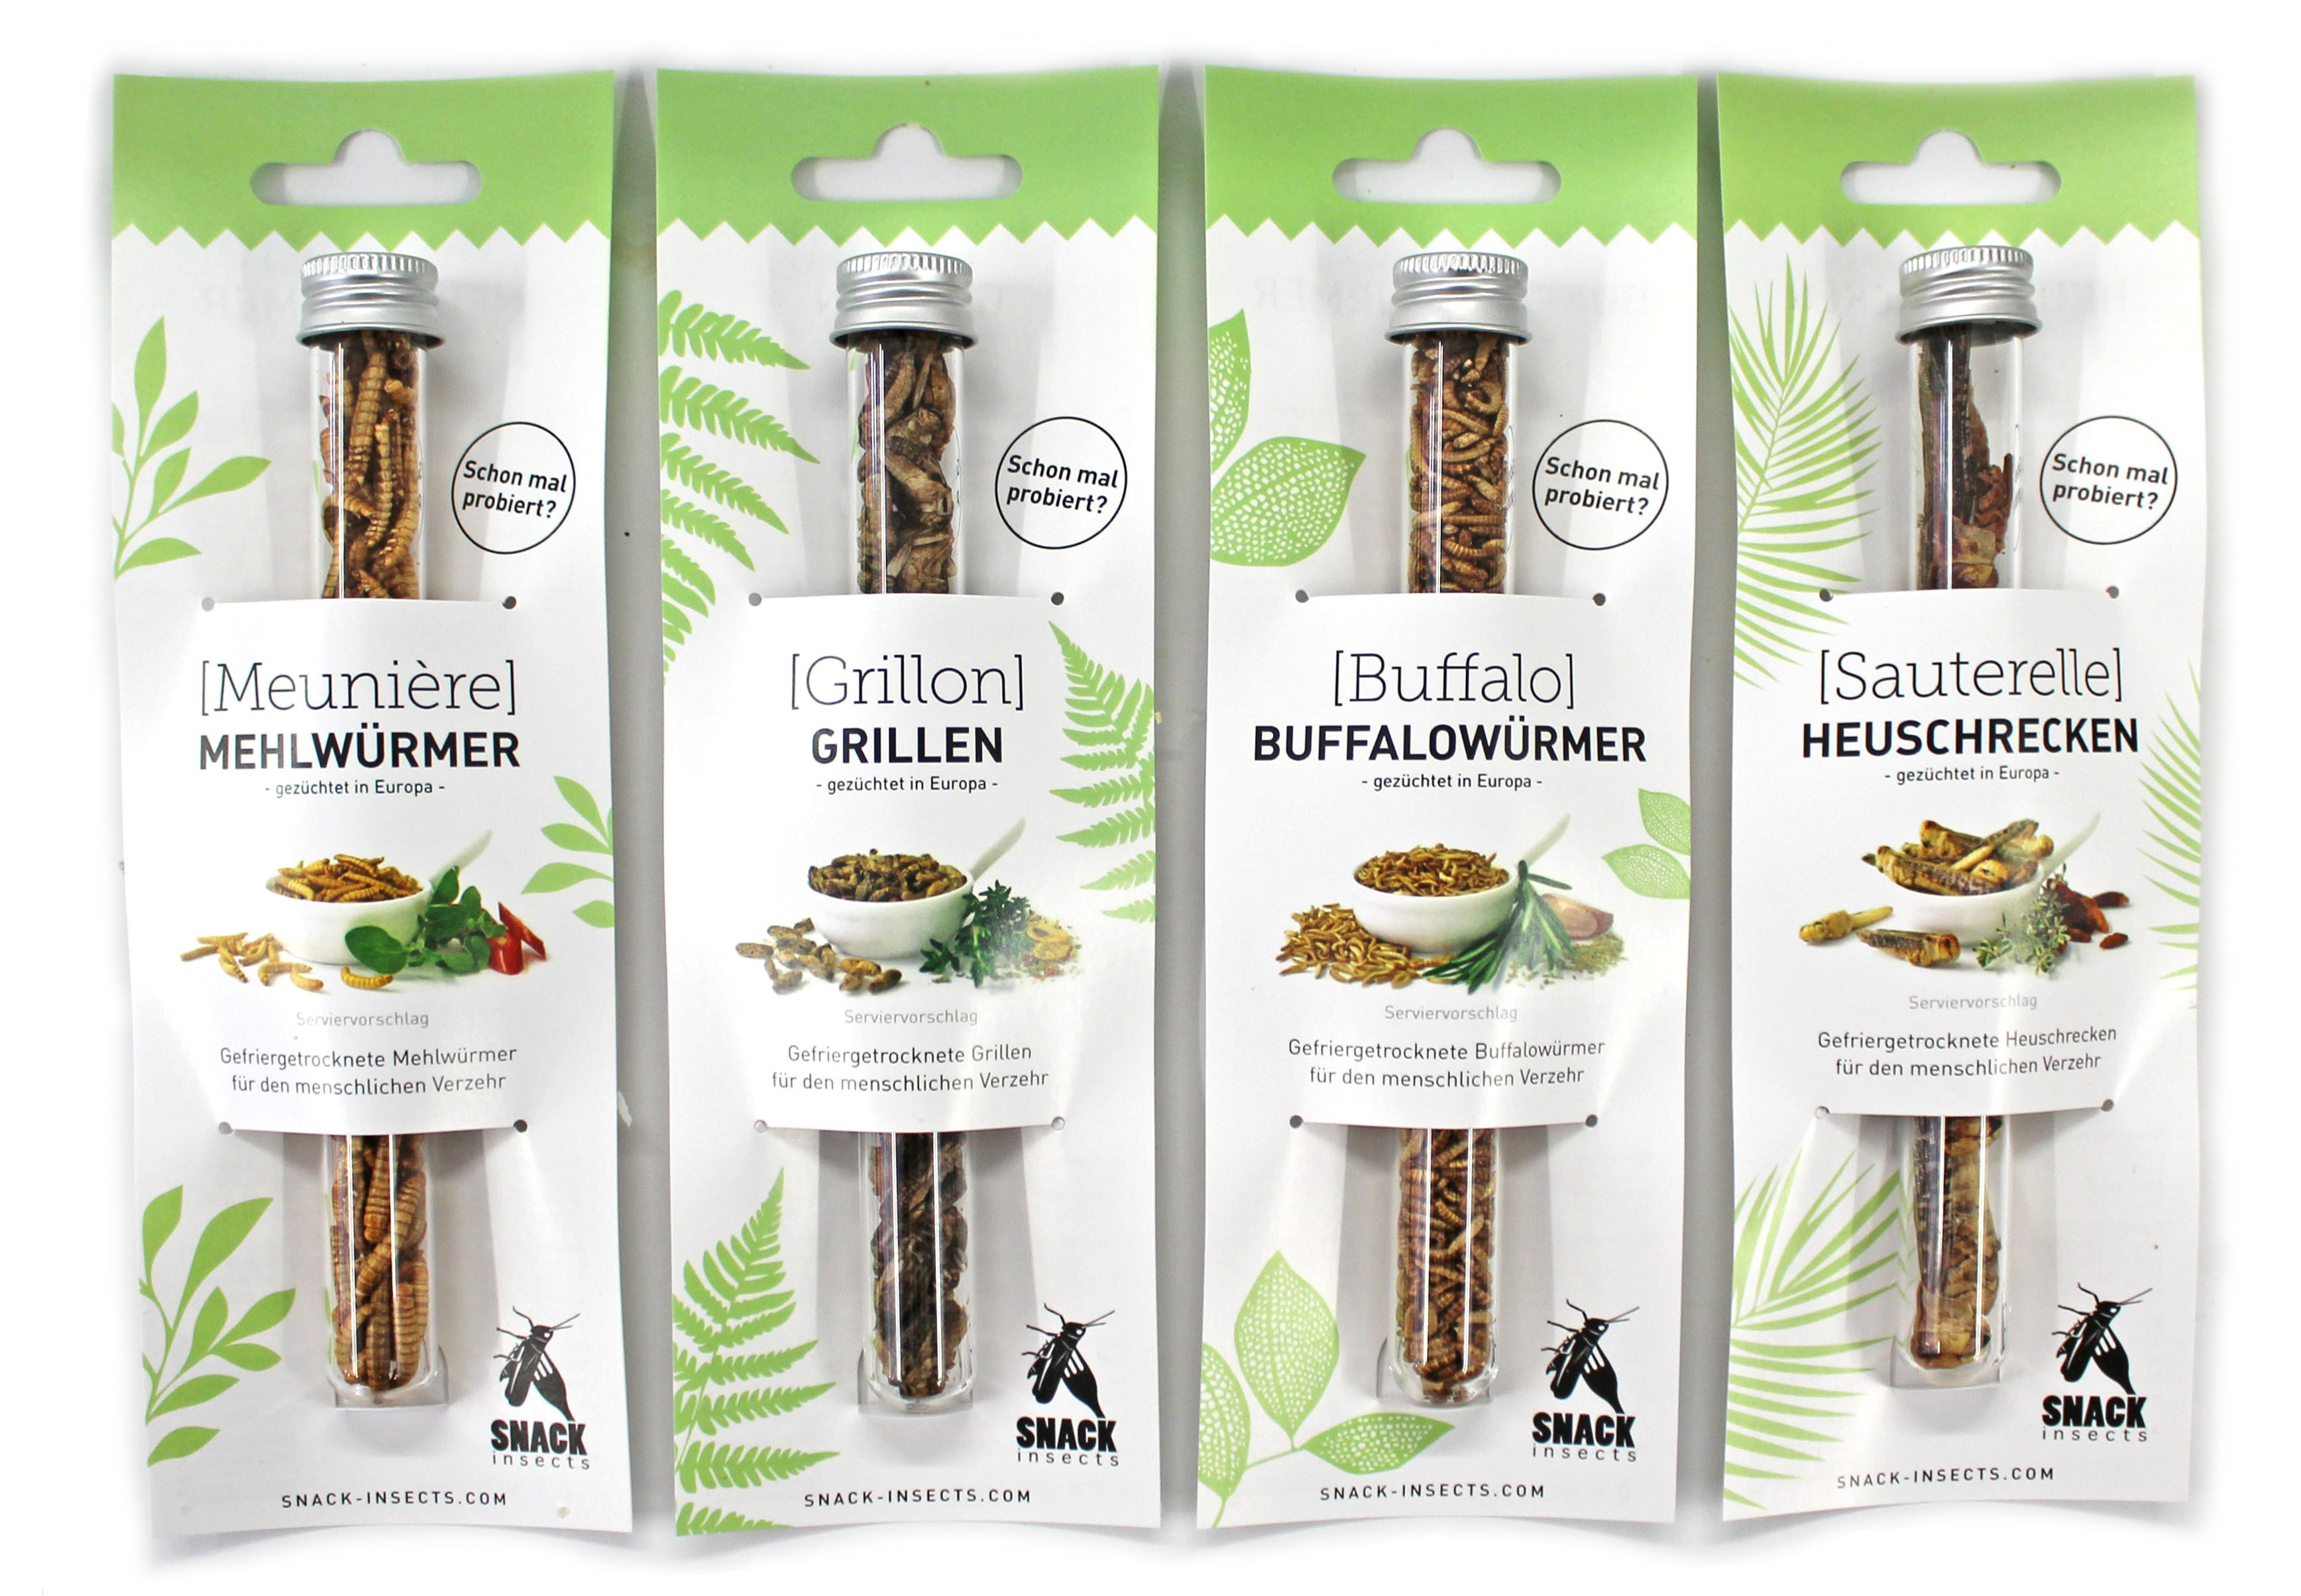 4er_Rohrchen_Snack-Insects_Produktbild